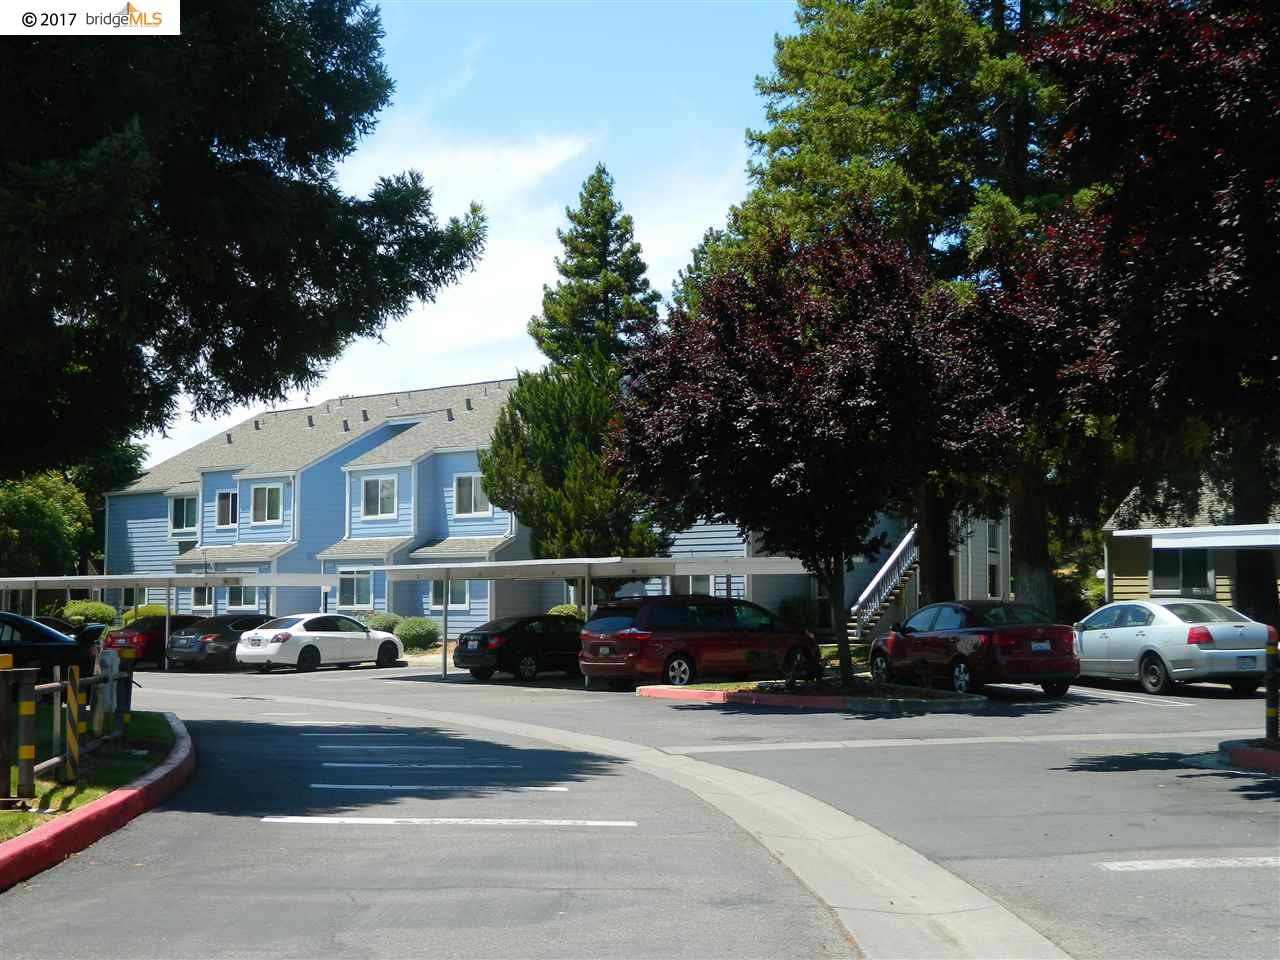 Condominium for Sale at 2751 Winding Lane 2751 Winding Lane Antioch, California 94531 United States